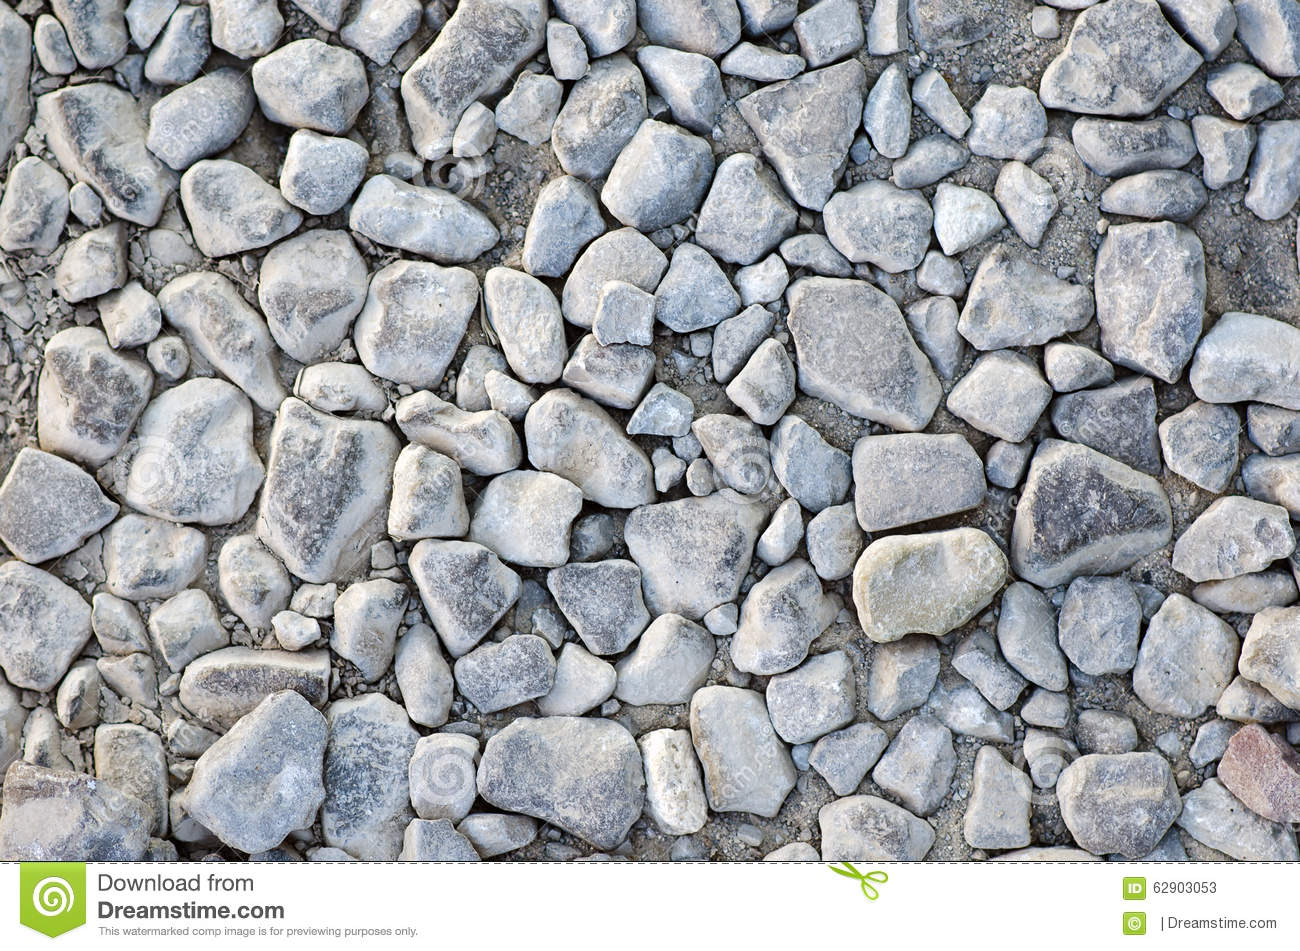 Rubble Stone Elevation Symbol : Stones in equality royalty free stock image